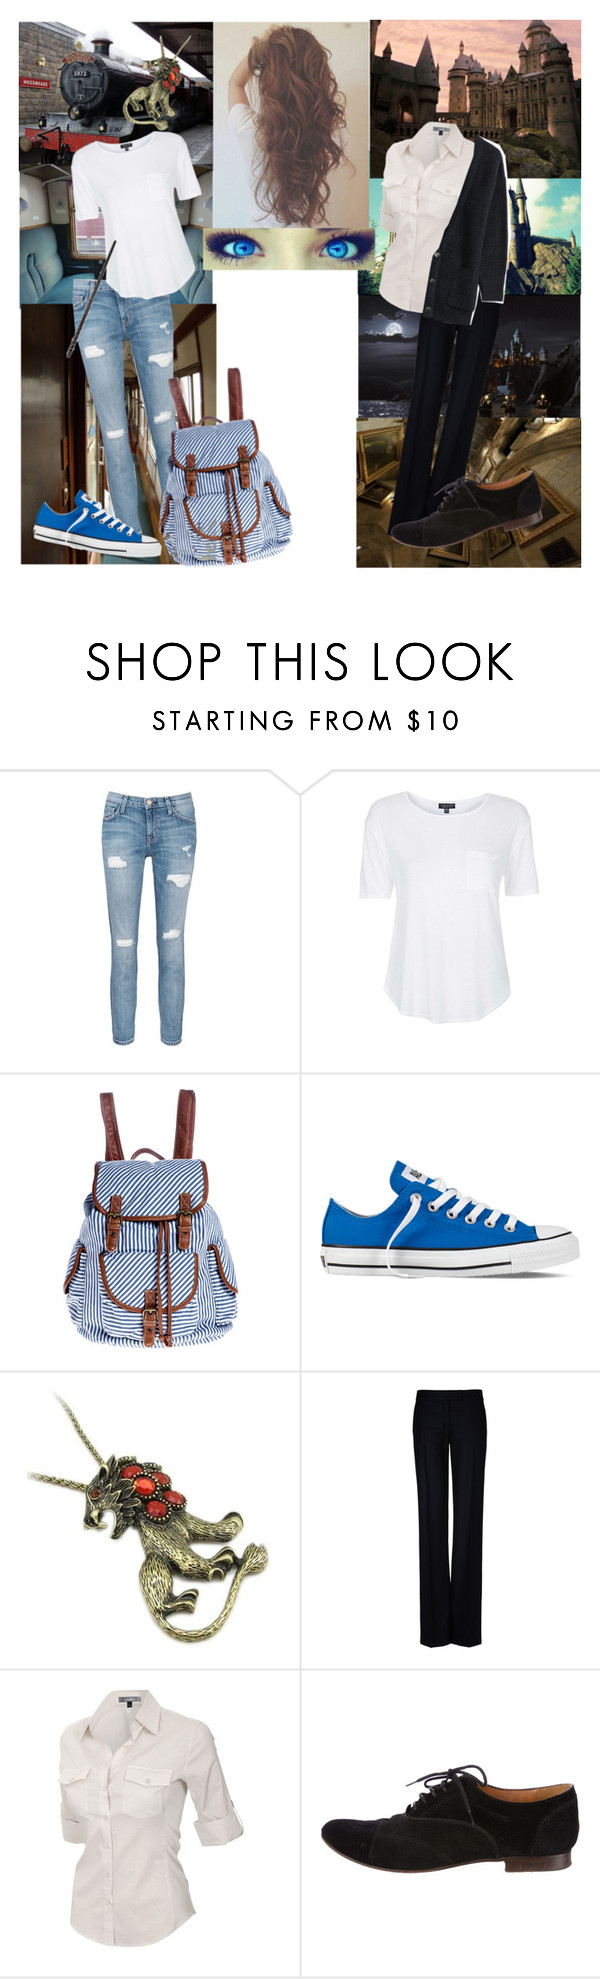 """Harry Potter - Leo Black - September the first 1991"" by rather-be-surfing ❤ liked on Polyvore featuring SOLD Design Lab, Current/Elliott, Topshop, Converse, STELLA McCARTNEY, J.TOMSON, Lanvin, Closed, women's clothing and women"